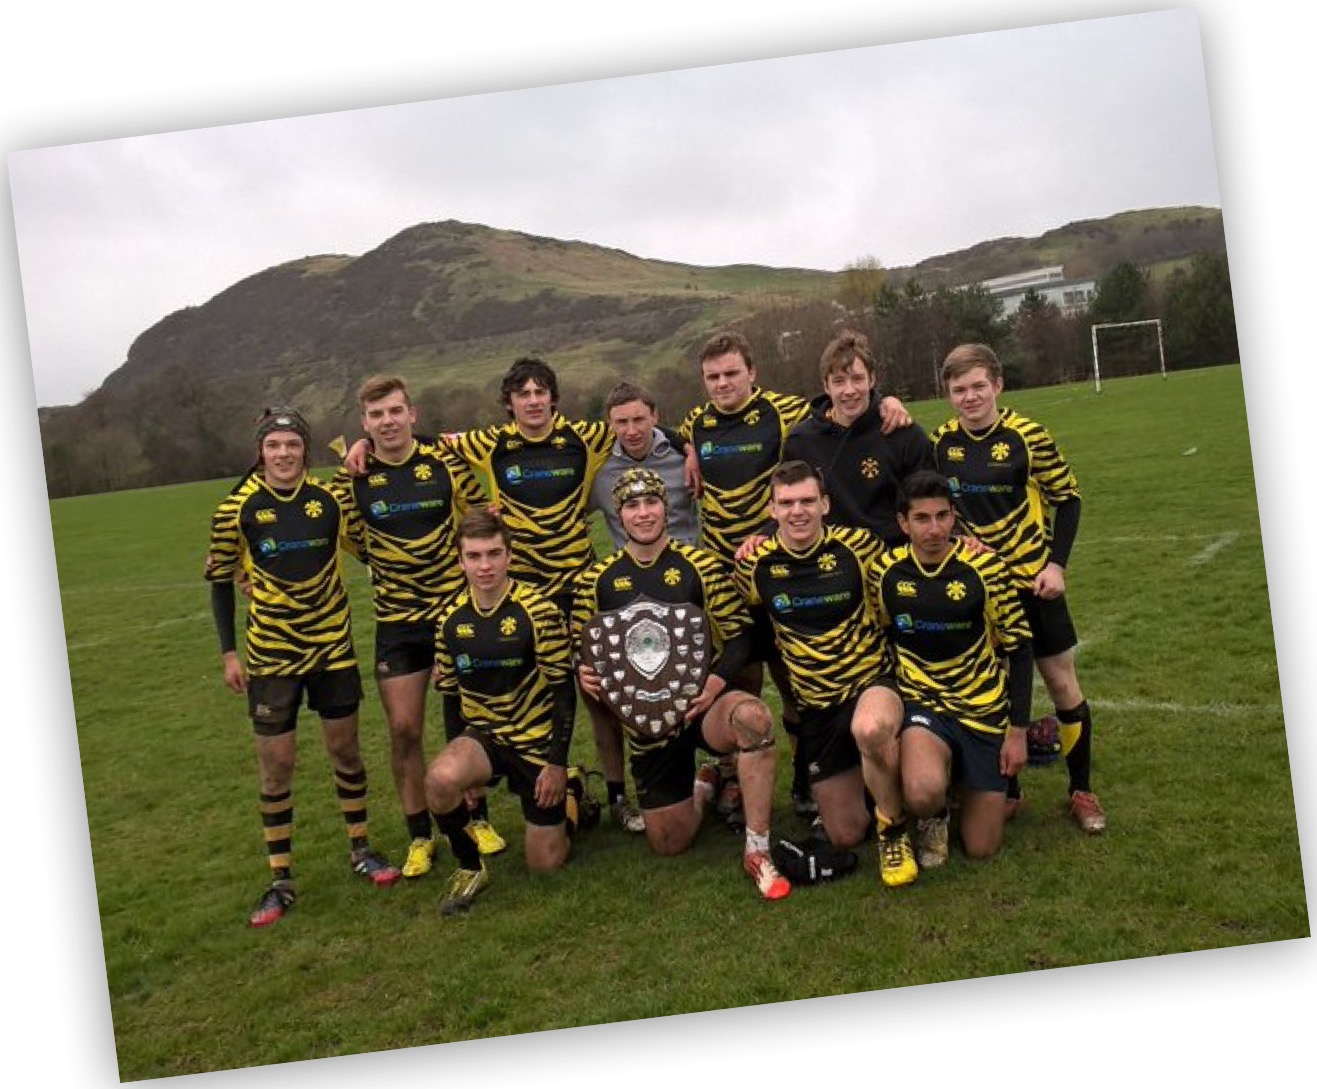 Rugby 7s under 18s champions